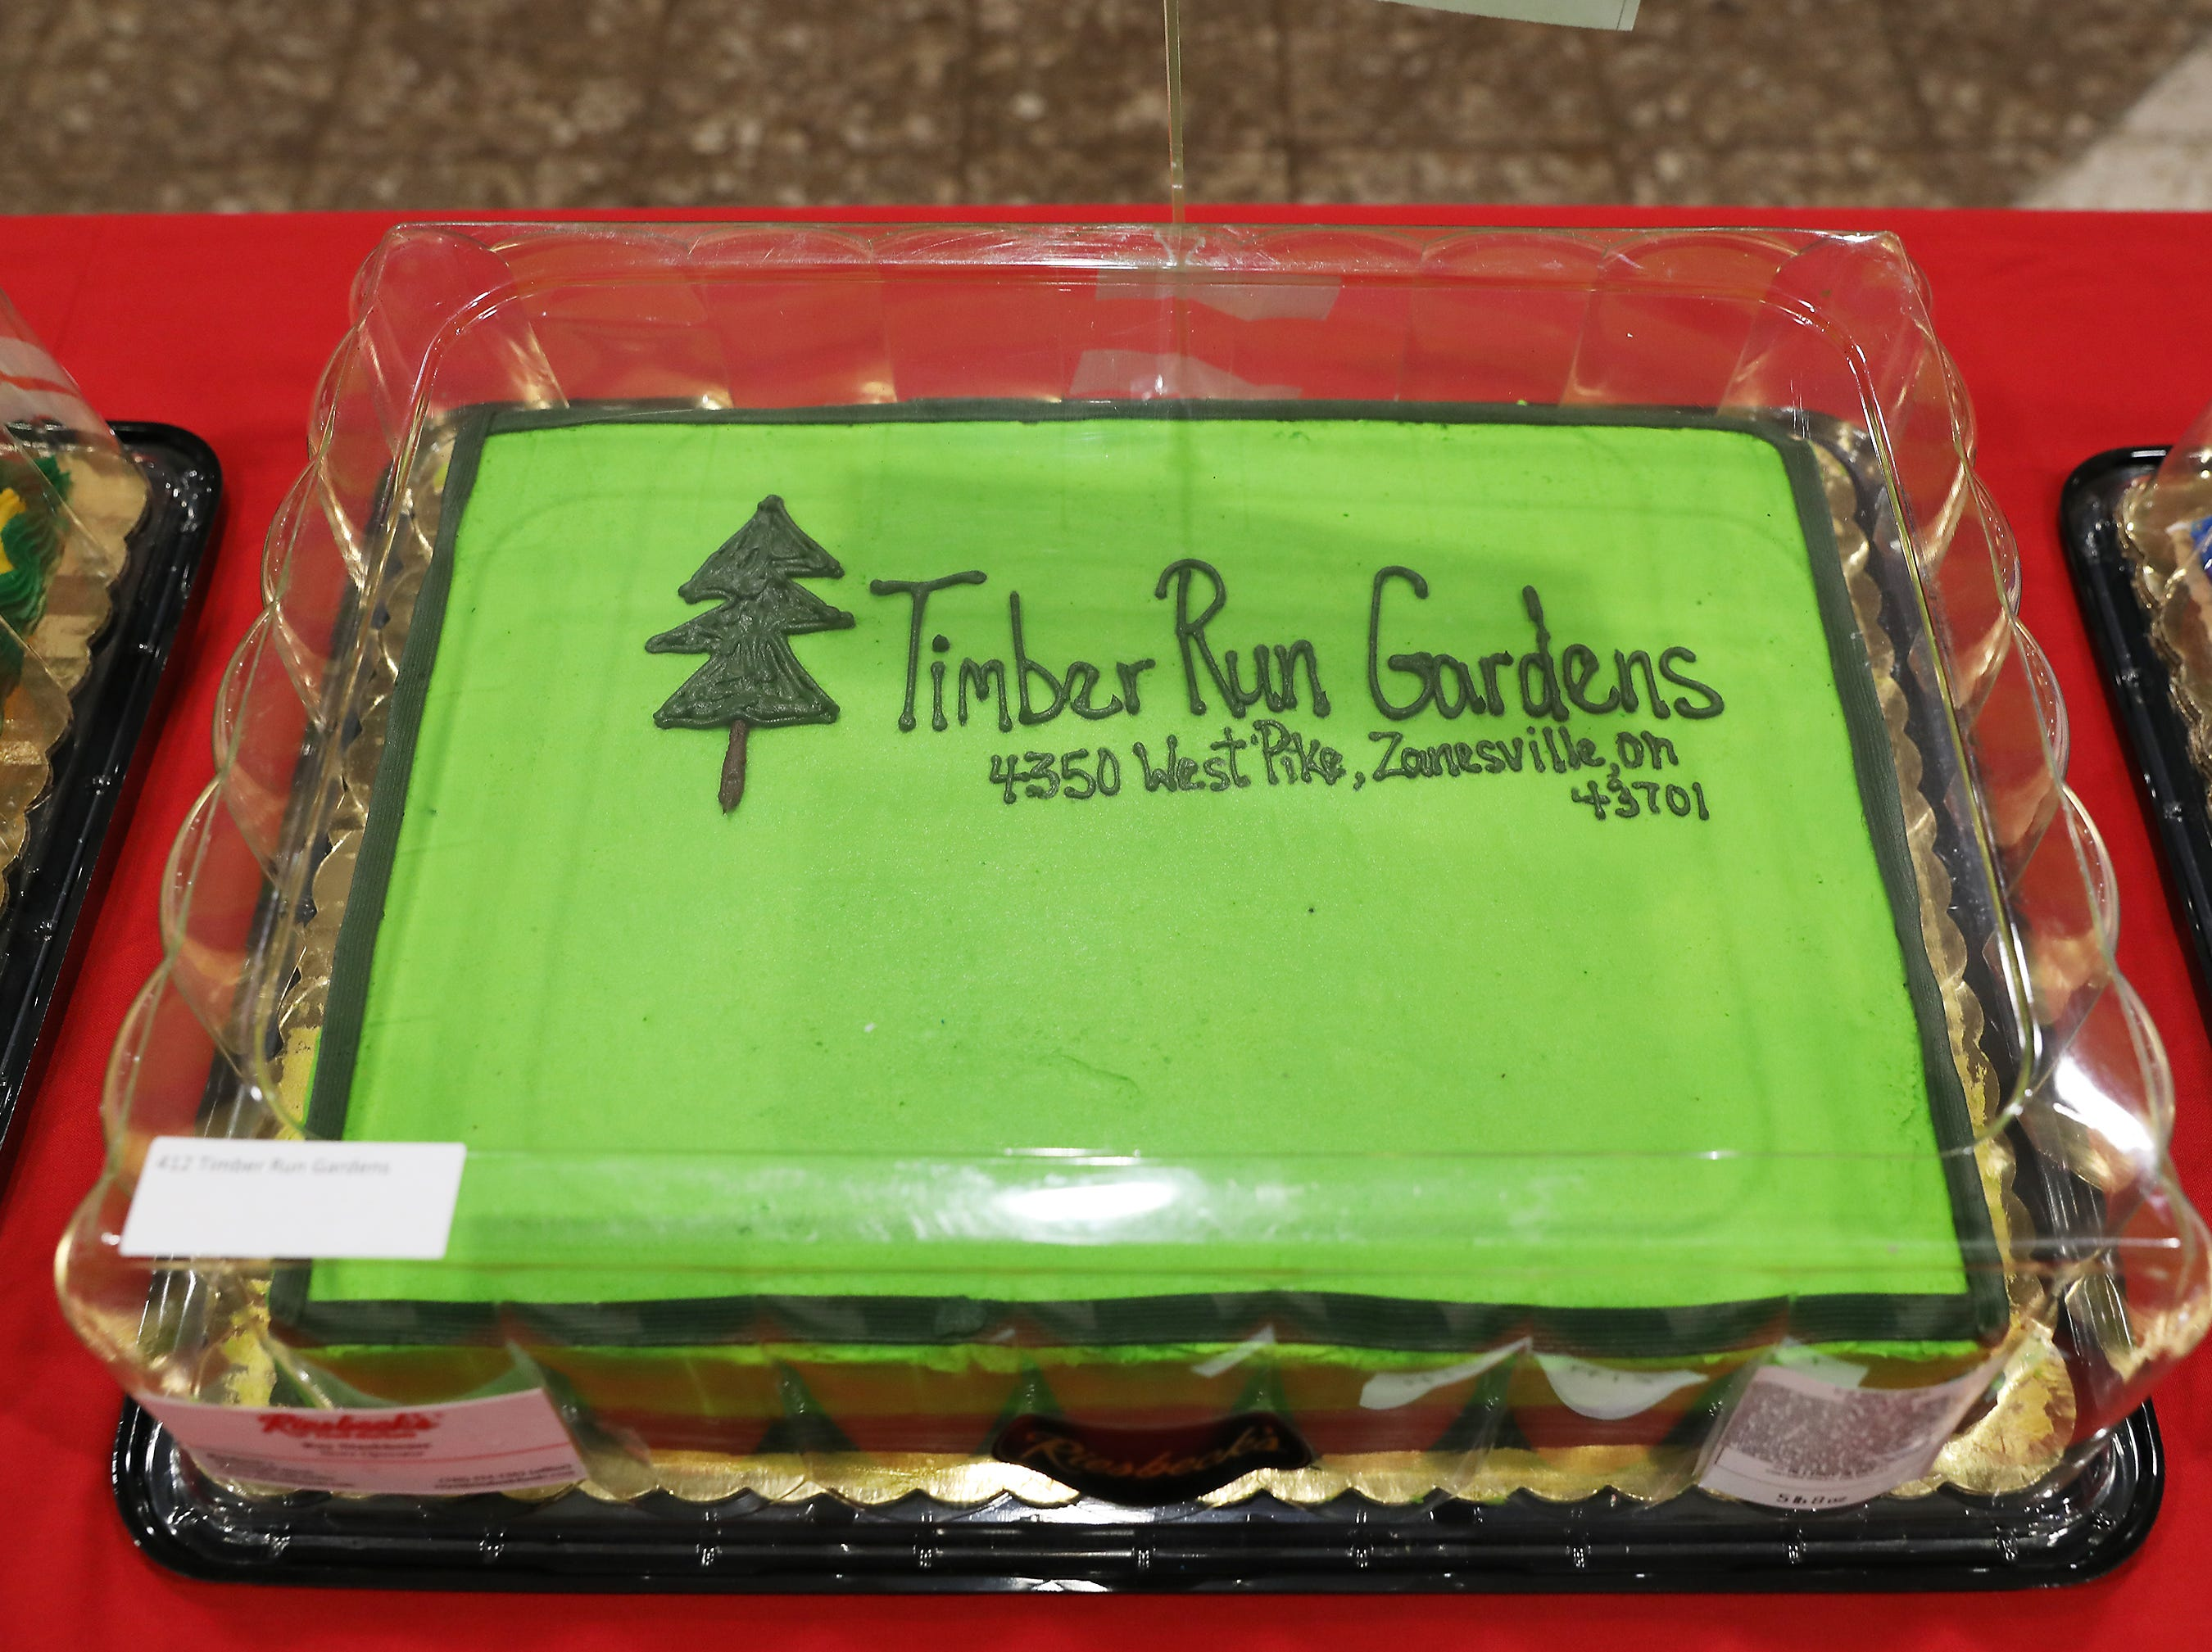 5:45 P.M. Friday cake 412 Timber Run Gardens - spring package 1 flat of vegetables, apple tree, week preventer, mulch; mid Spring package, large hanging basket, 10 geraniums, 5 perennials, 2 roses, 1 deer repellent; fall package 10 mums, 5 asters, 1 red maple; Christmas package 1 poinsettia, 1 6-8' frazier fir; $700